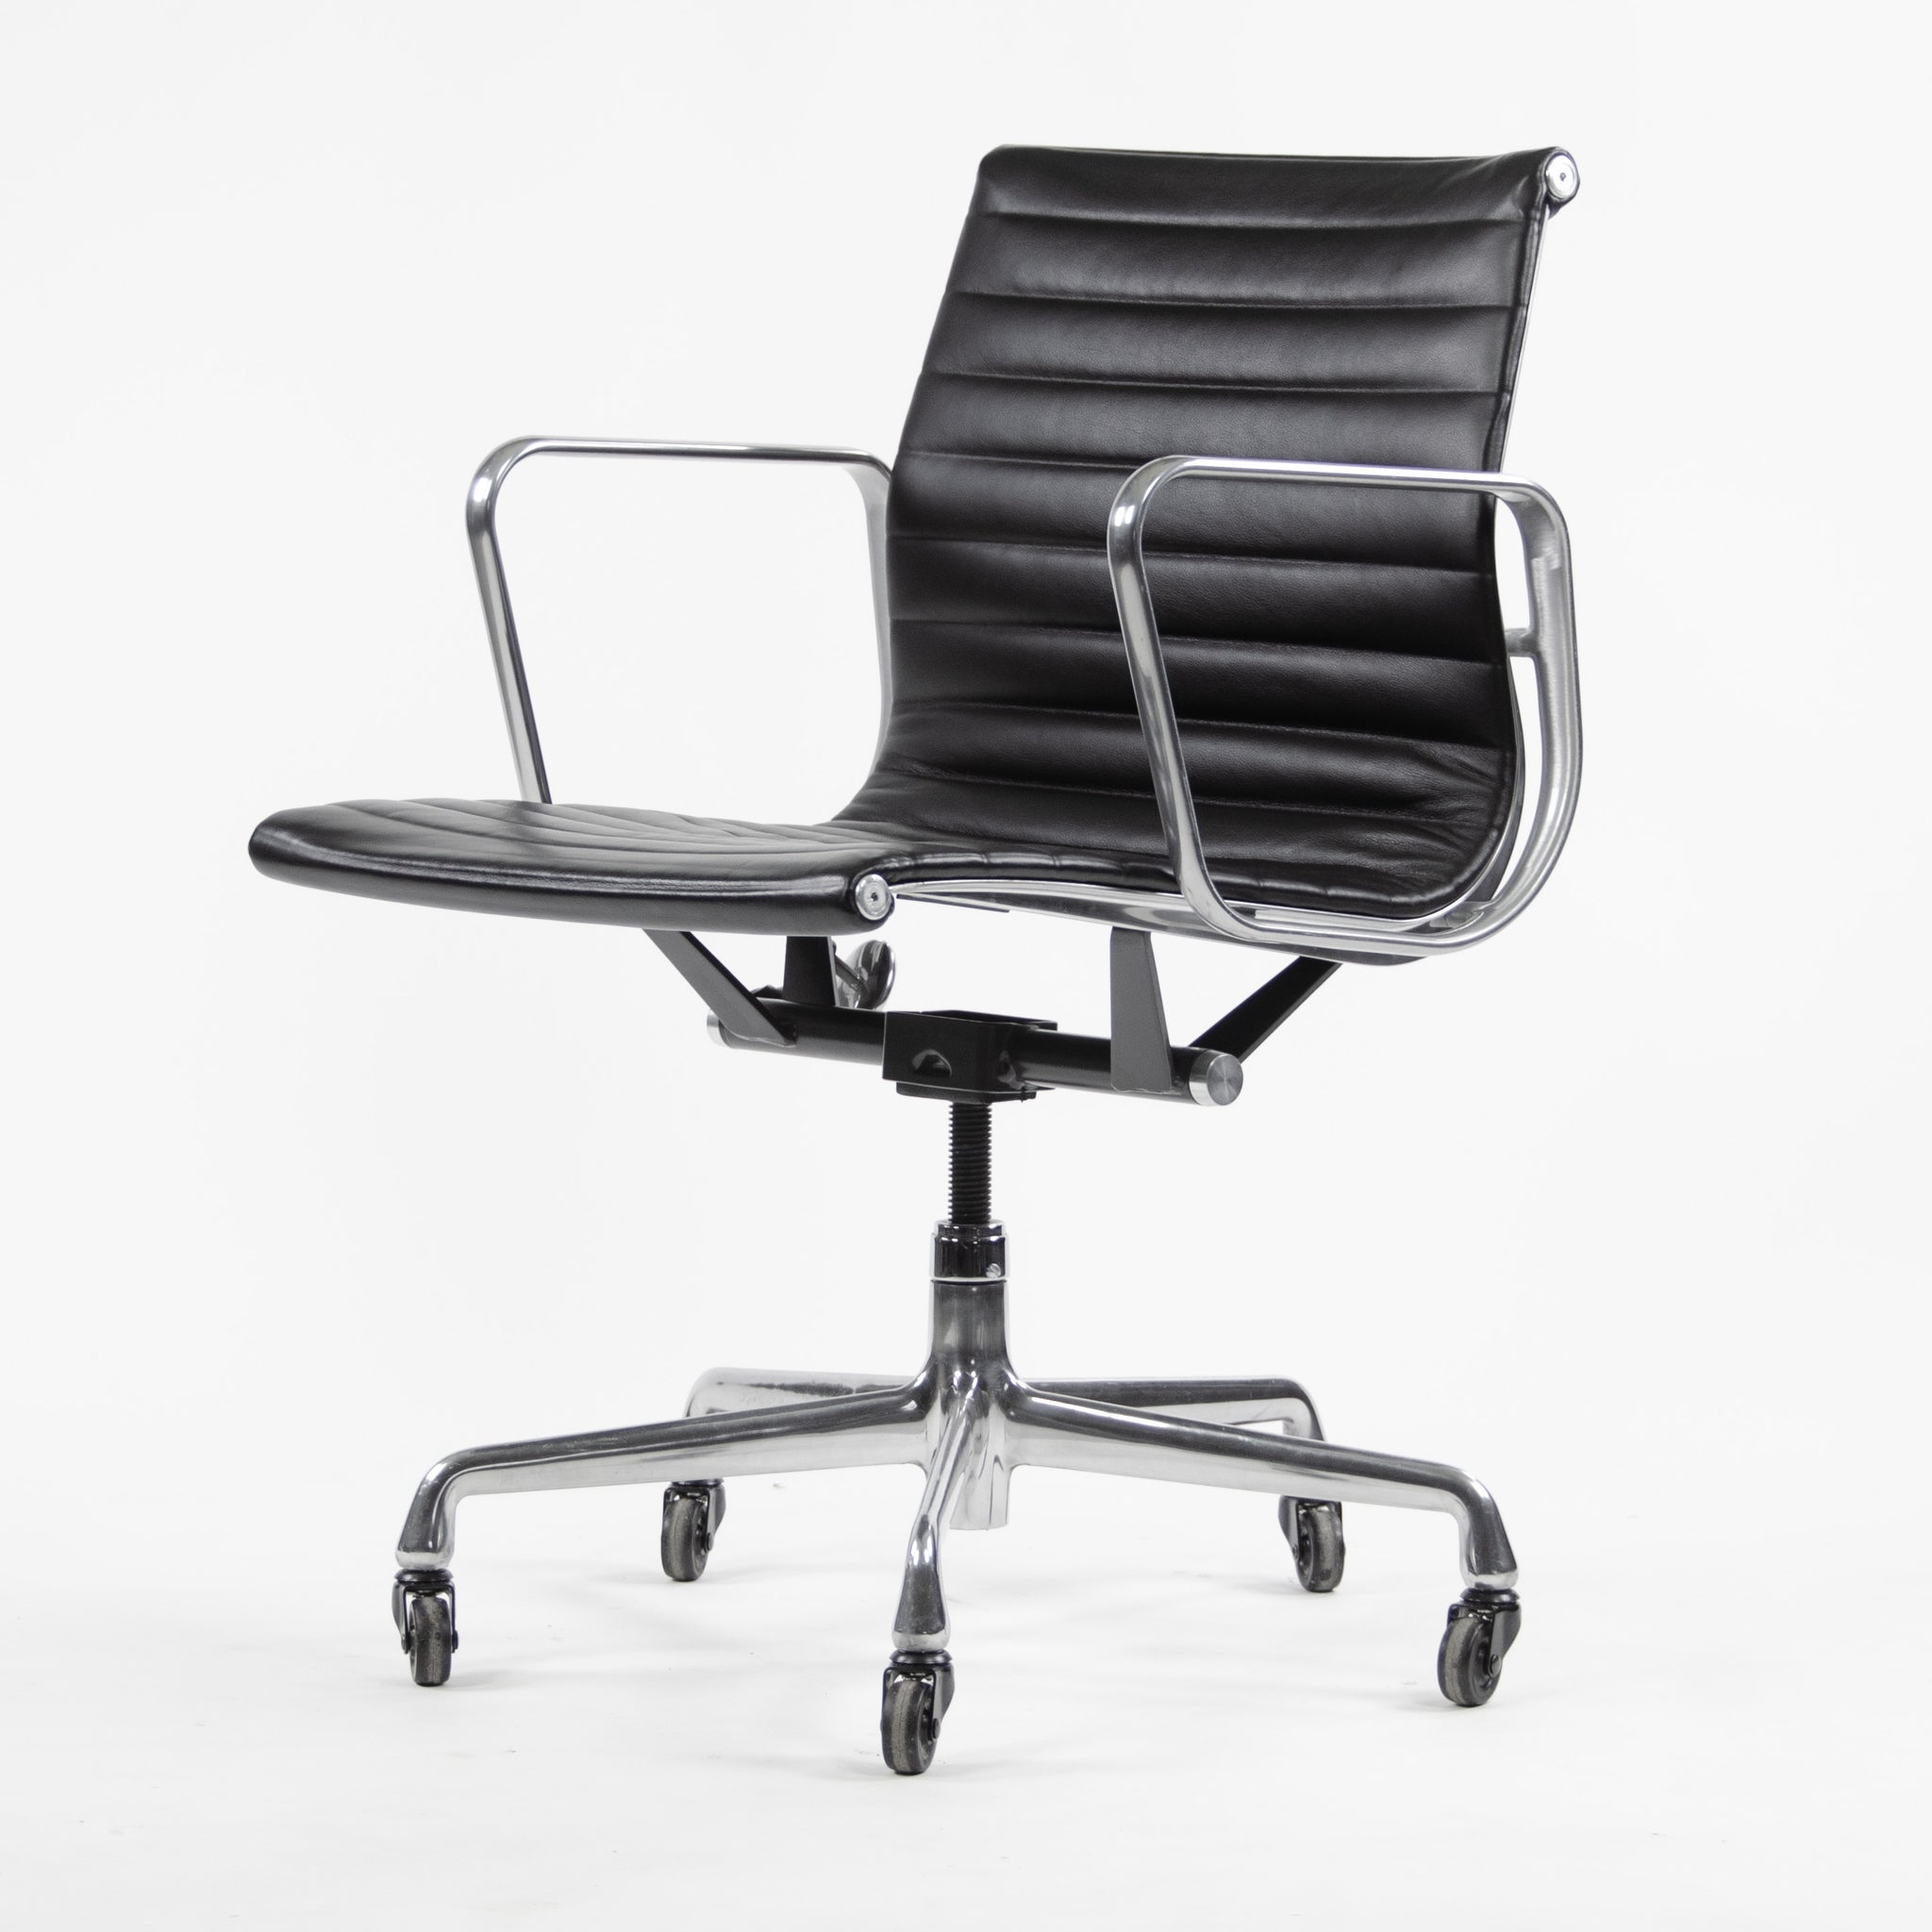 SOLD Herman Miller Eames Aluminum Group Low Back Chair Black Leather 2009 2x Available